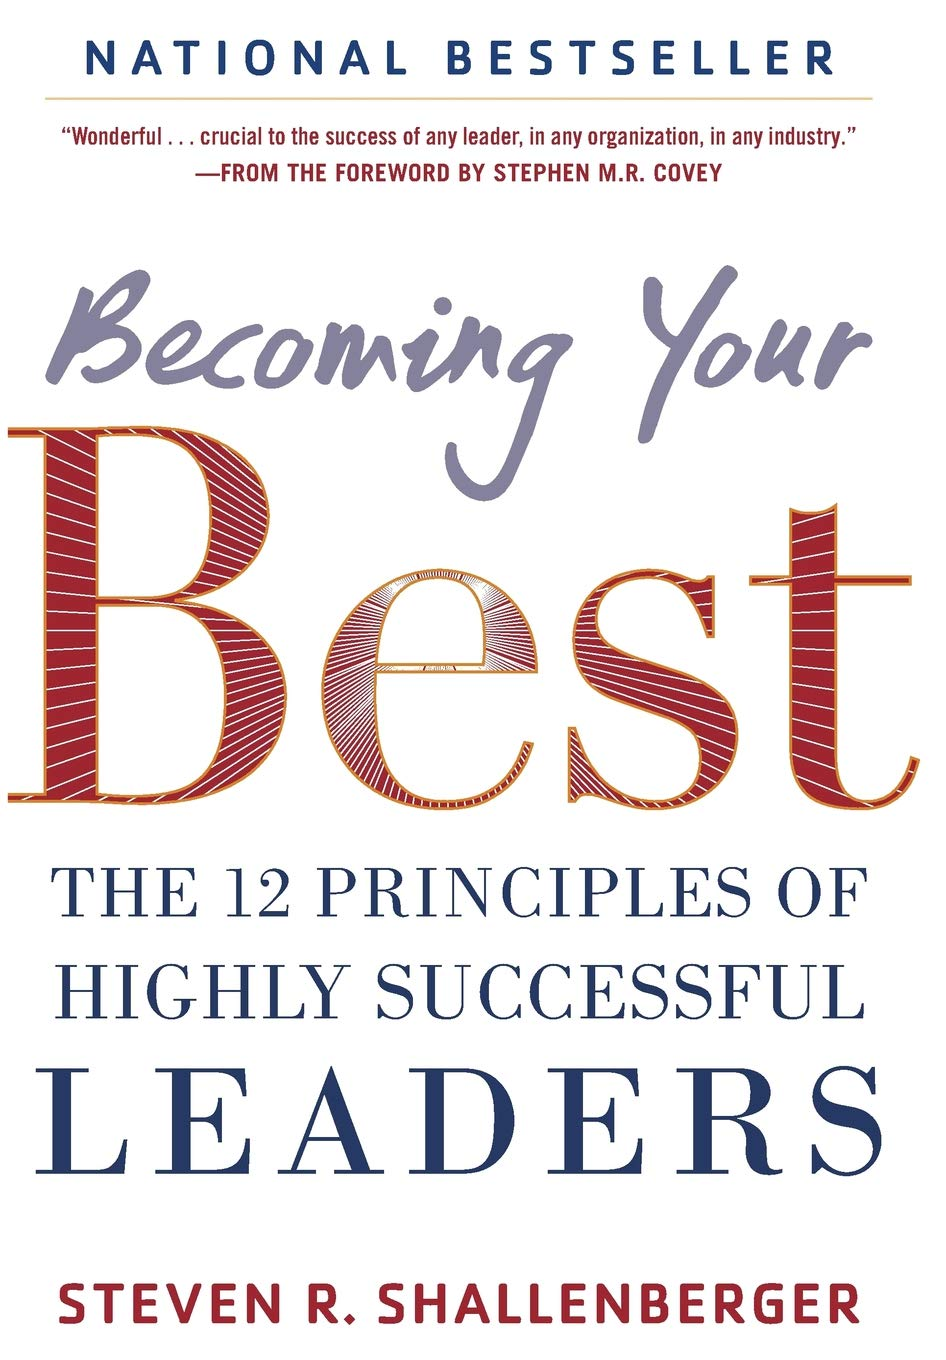 Becoming Your Best: The 12 Principles of Highly Successful Leaders: Steve  Shallenberger: 9780071839983: Amazon.com: Books